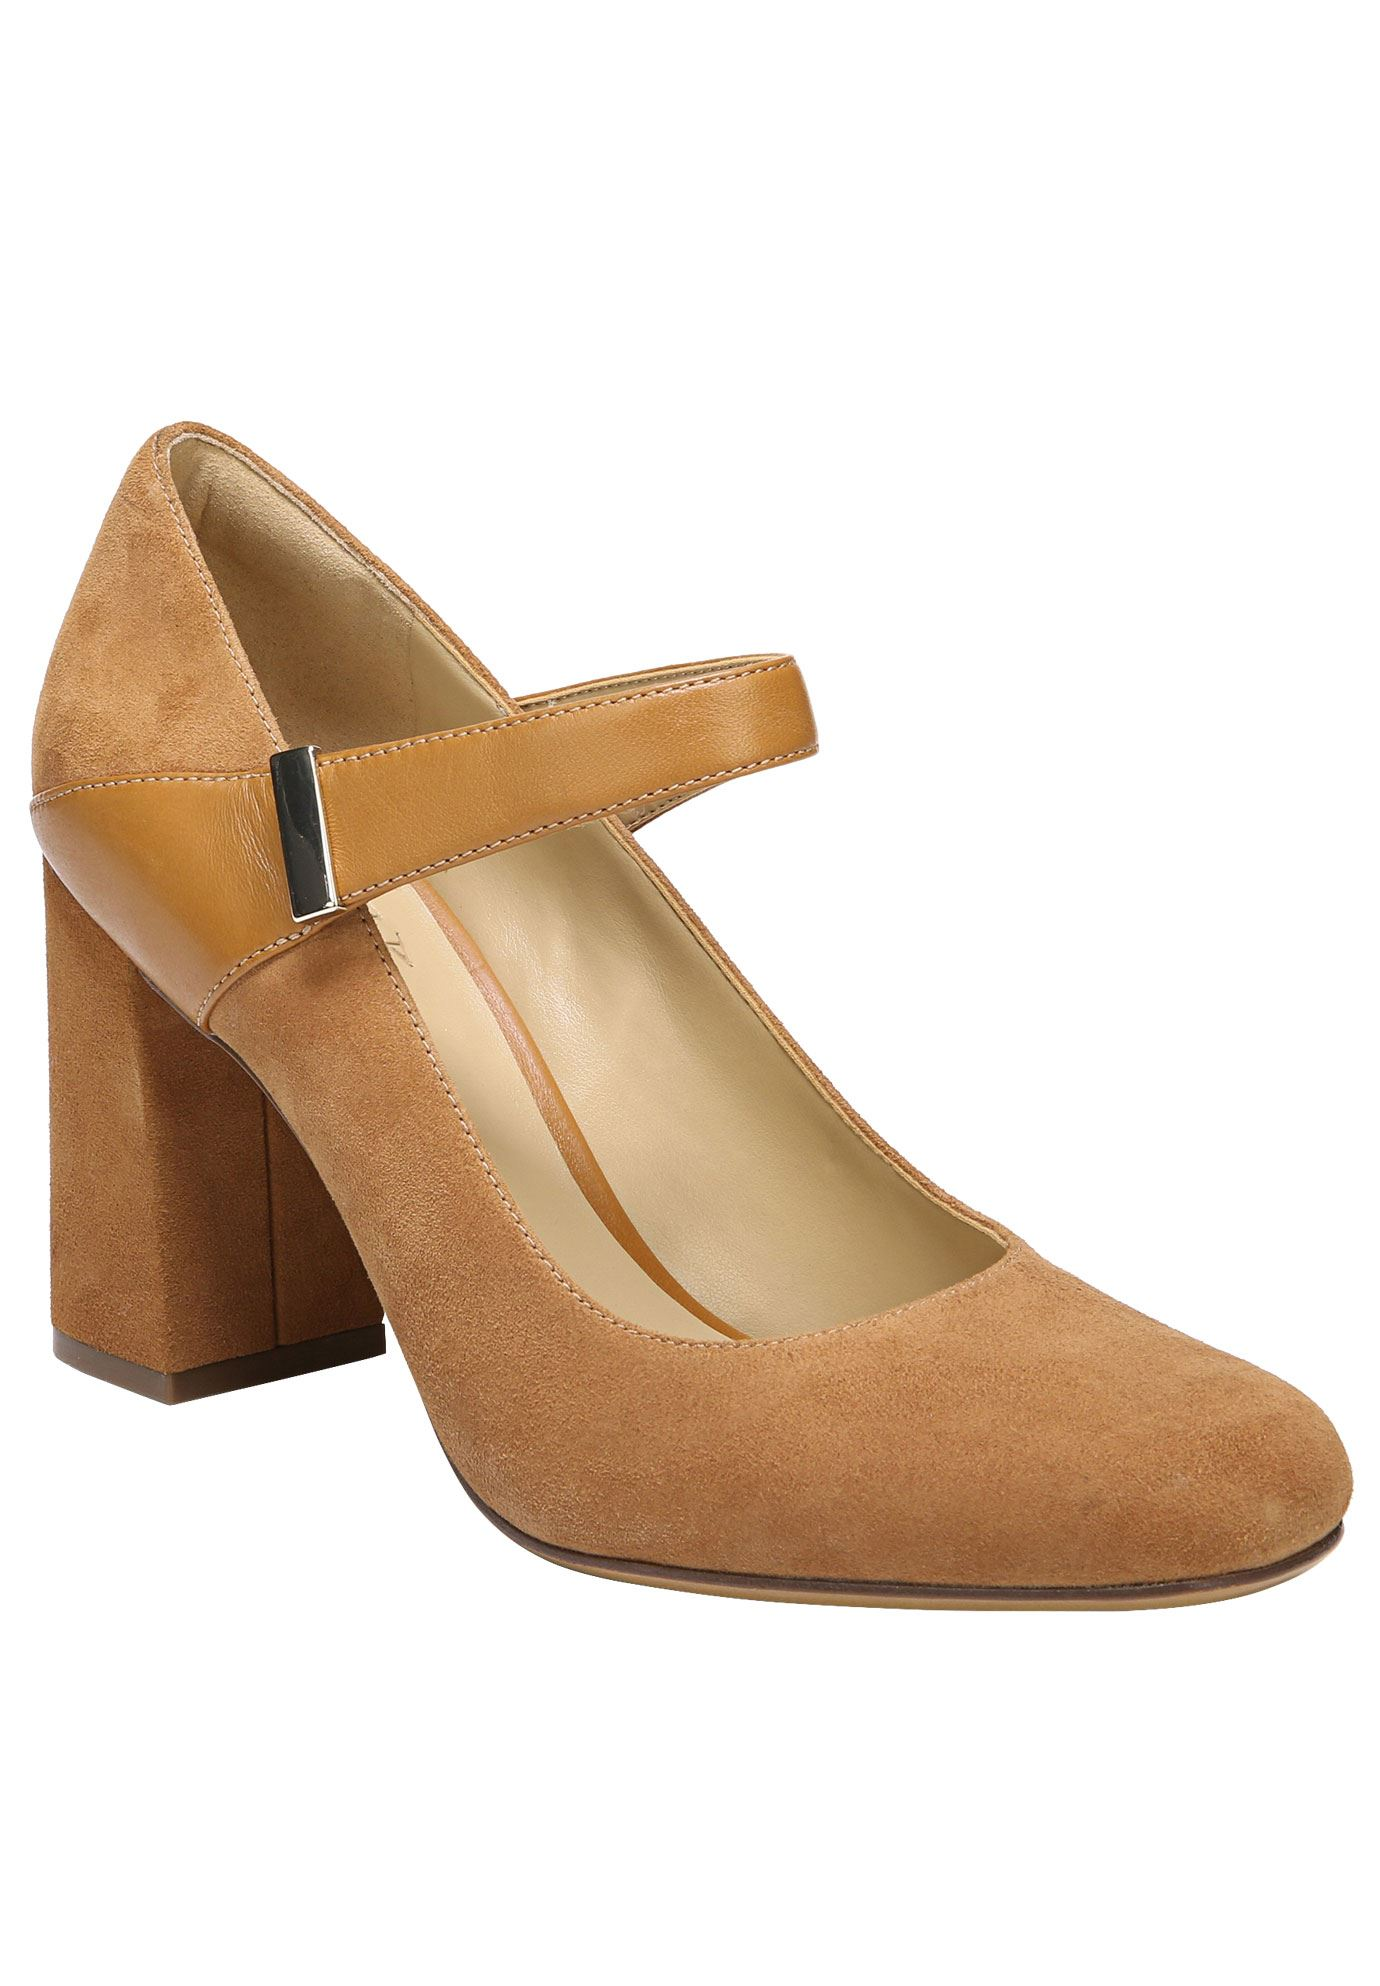 Reva Pumps by Naturalizer®,